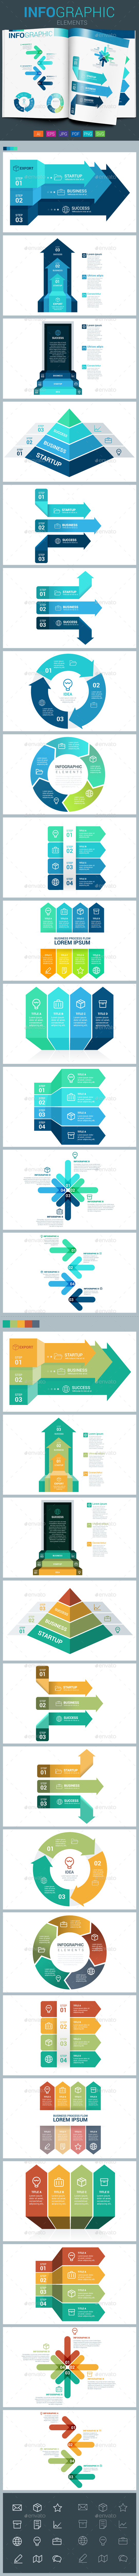 Infographic Elements - Arrow - Infographics